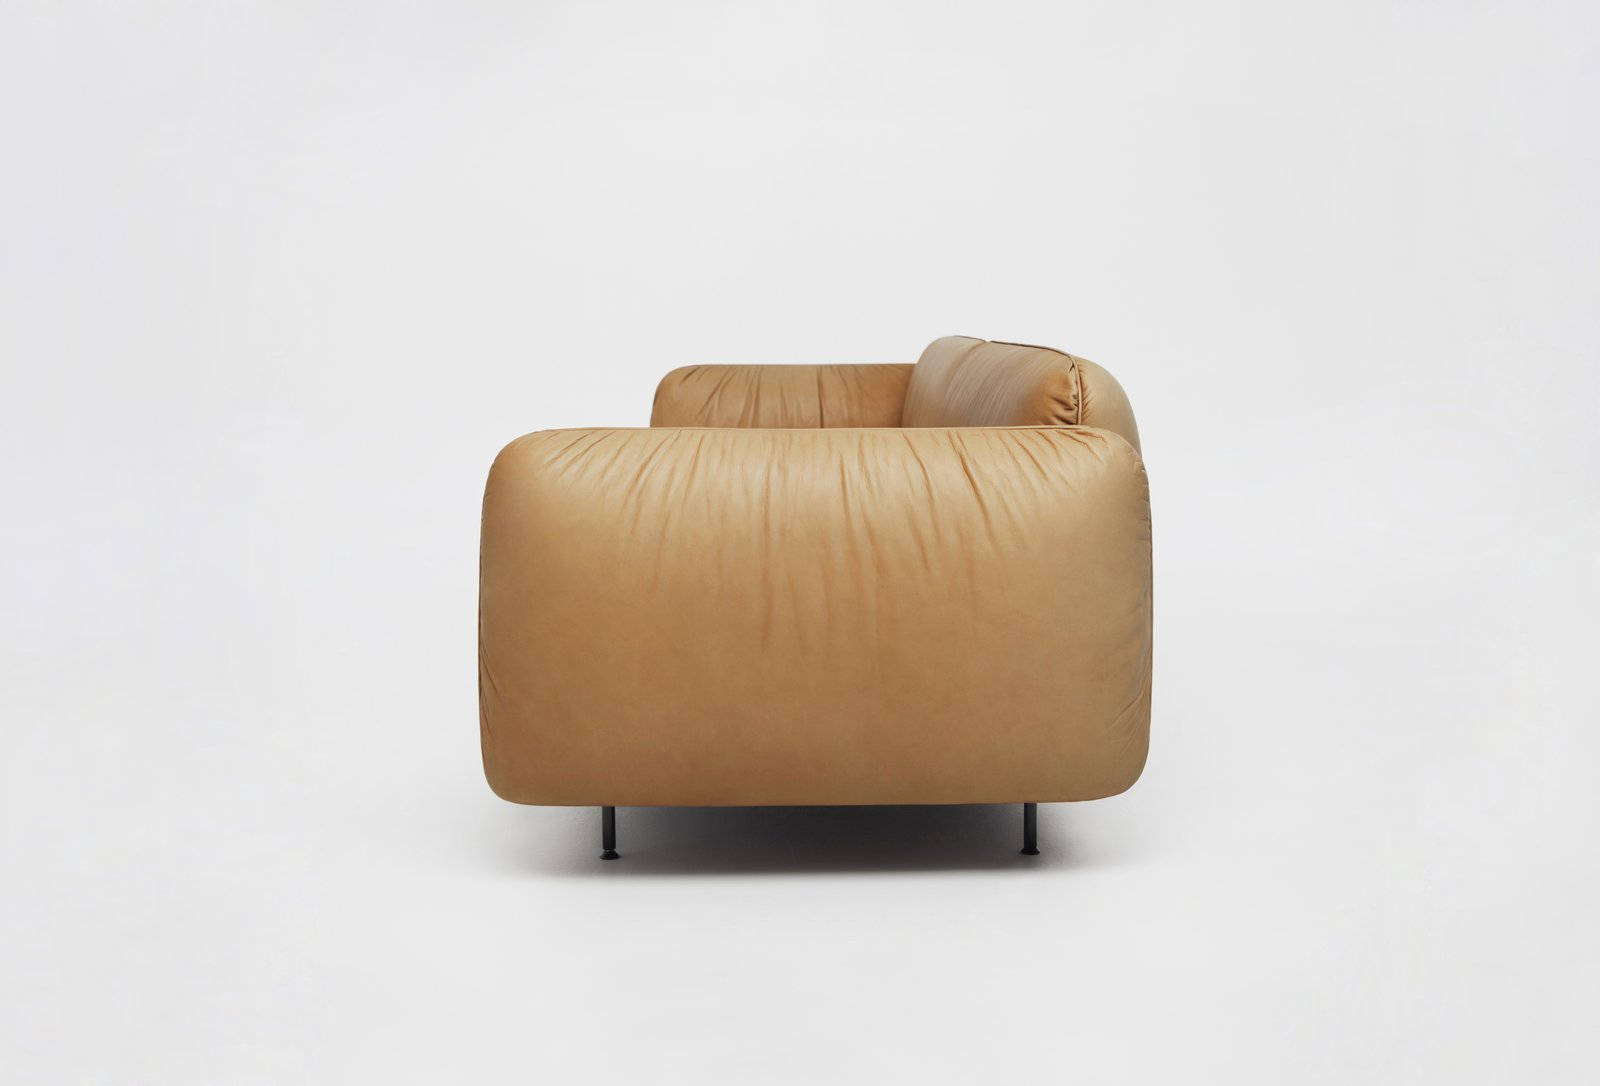 Living Room and Sofa Sofa C01 by Foraine  Saint-Laurent Apartment by Atelier Barda